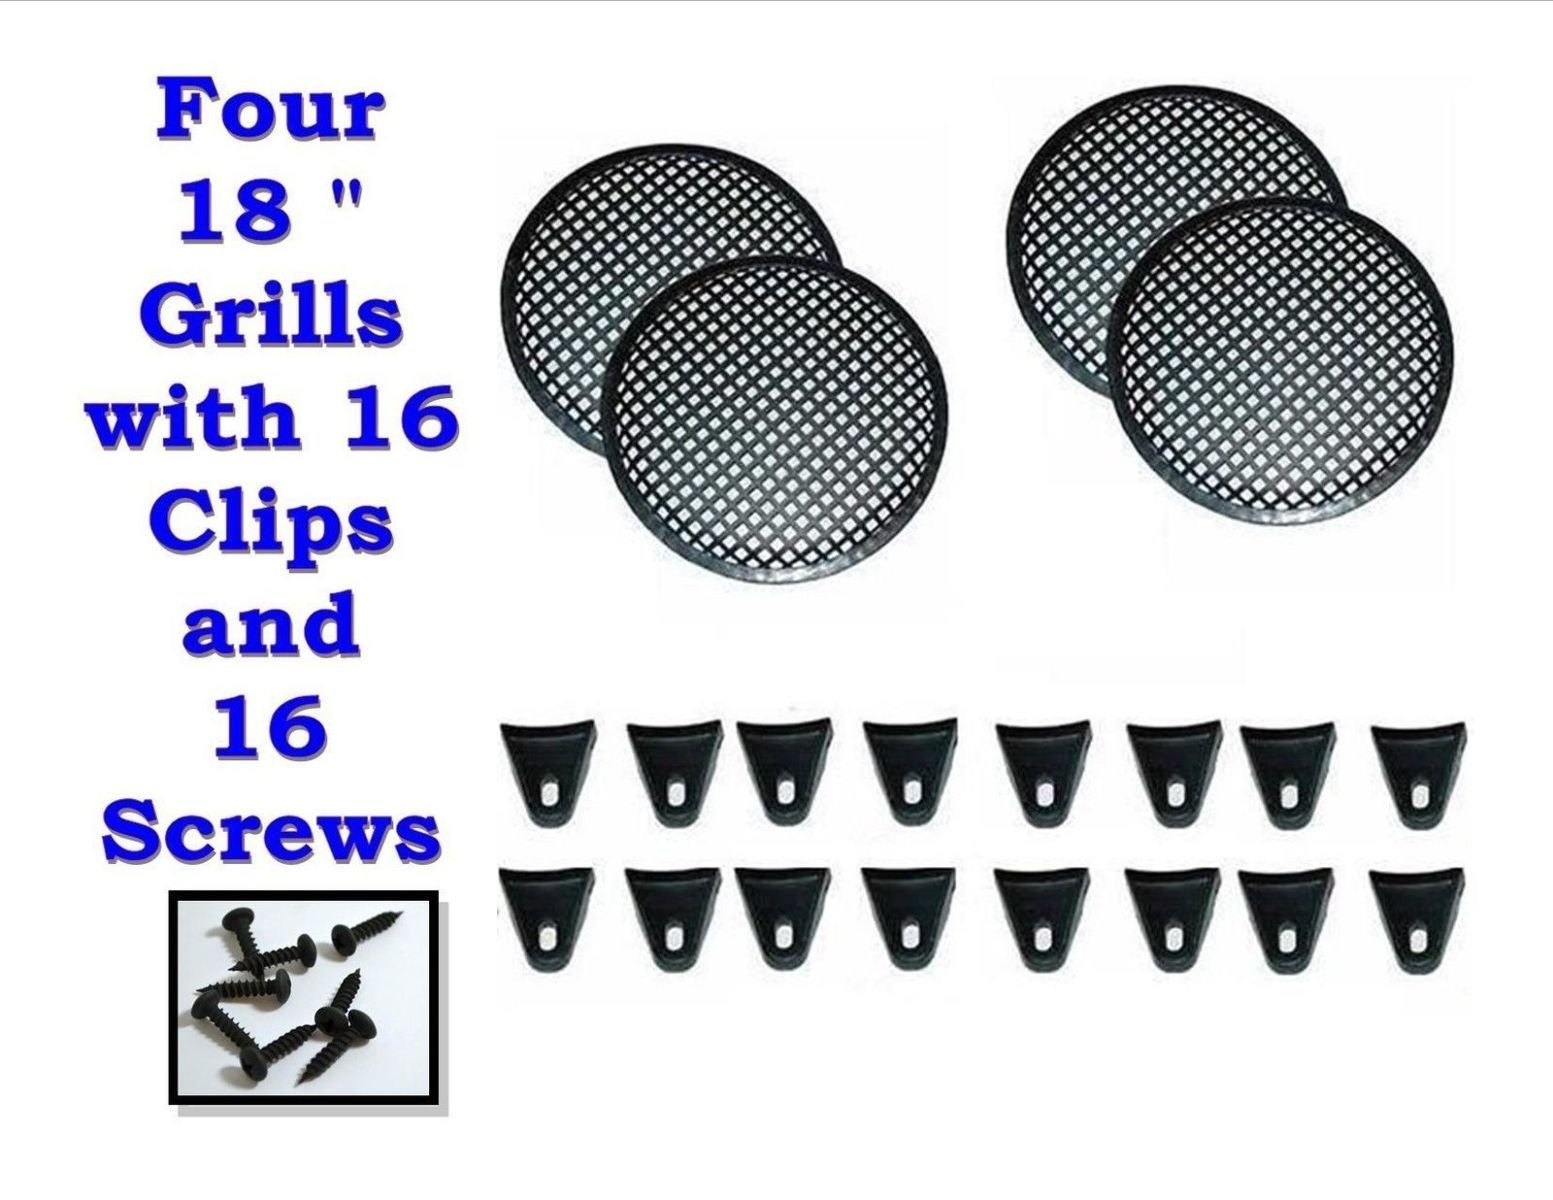 Audiopipe FOUR 18'' INCH WAFFLE SPEAKER SUB WOOFER GRILLS W/CLIPS & SCREWS DJ CAR GR-18 by Audiopipe